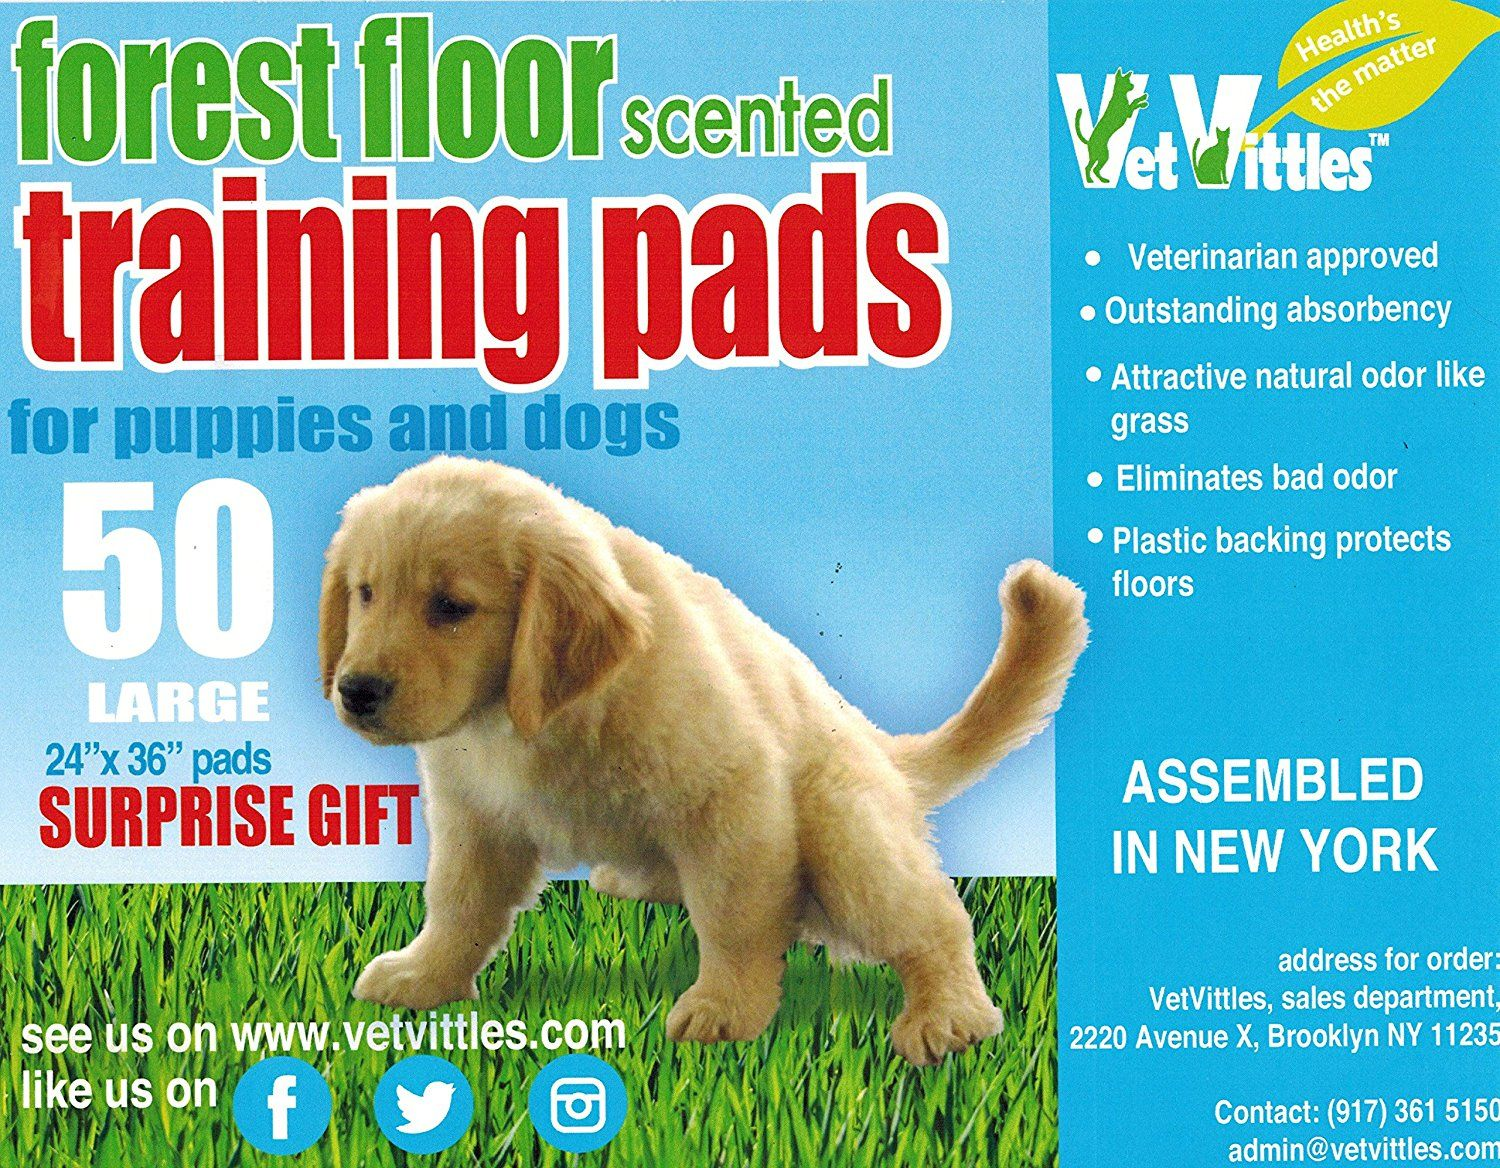 Vetvittles Forest Floor Scented Training Pads For Puppies And Dogs 50 Ct 24 X36 Pads Want To Know More Click On The Image Dog Training Pads Training Pads Dogs